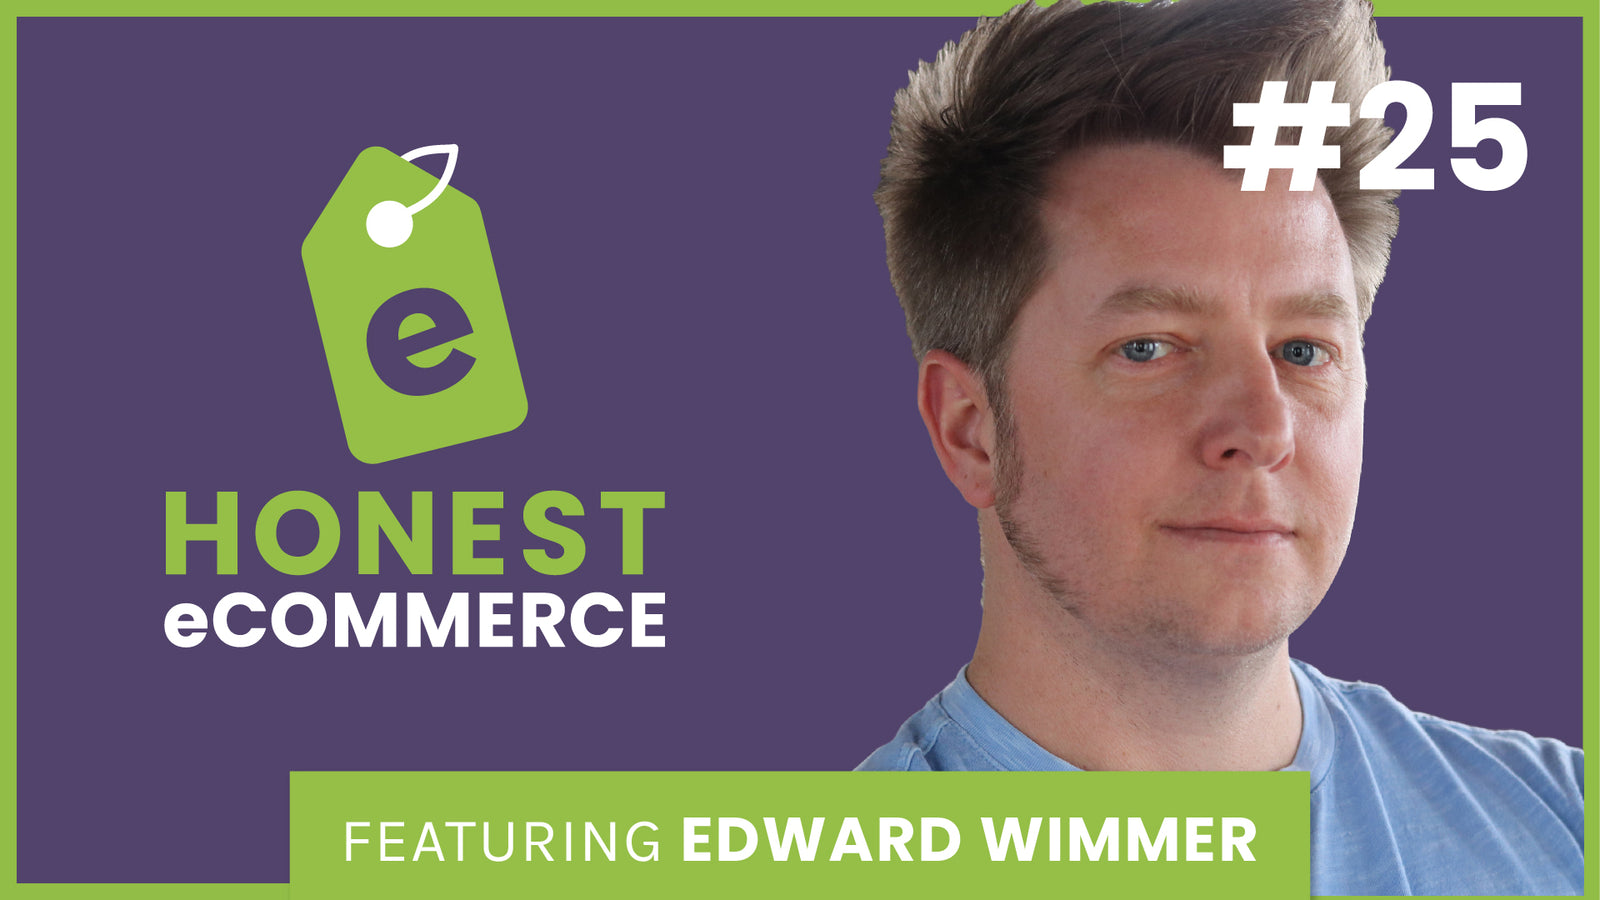 Edward Wimmer | Honest eCommerce